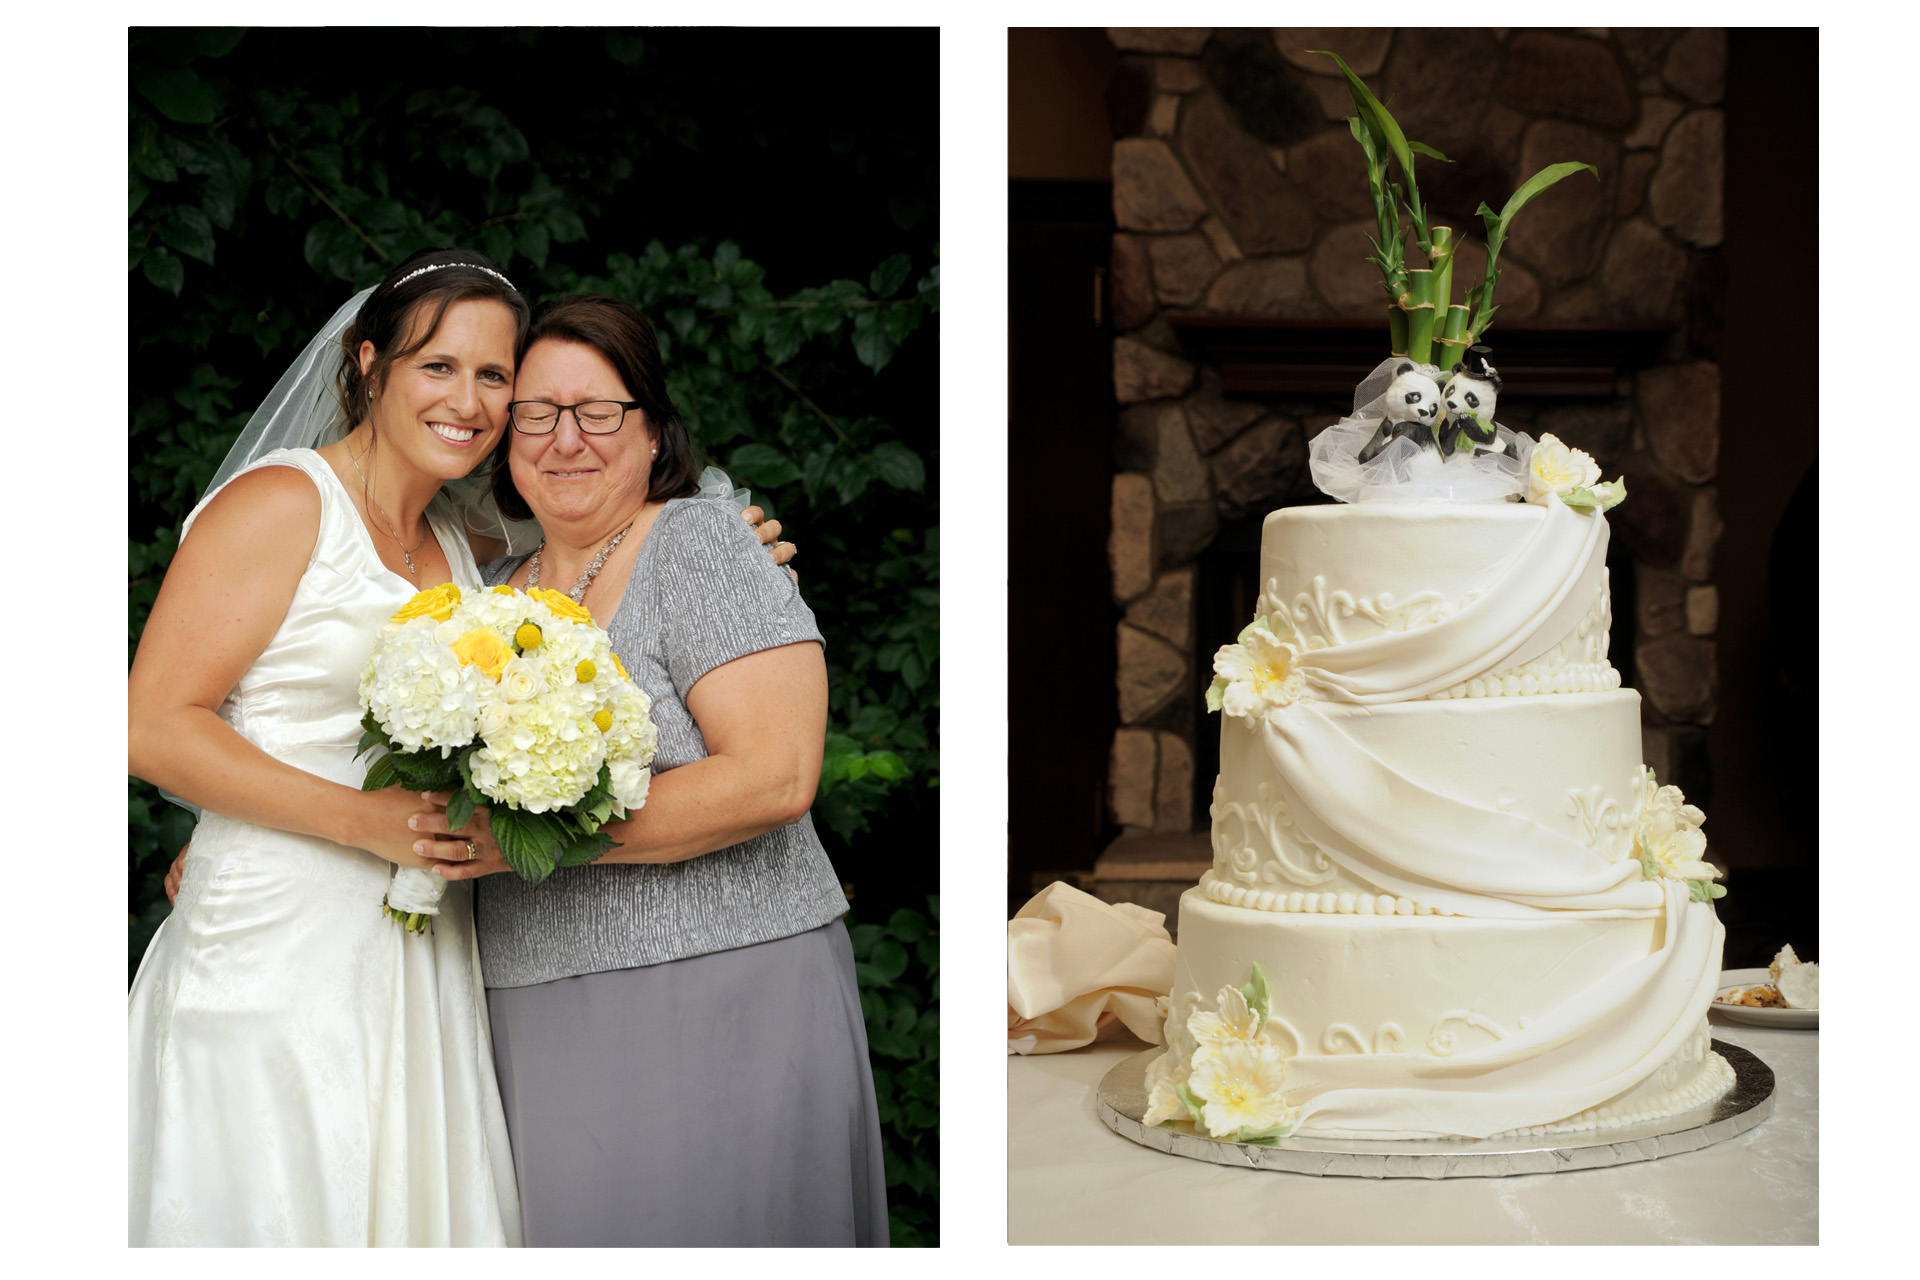 Pine Trace Golf Club wedding photographer's photo of the cake and the bride with her mother at the Pine Trace Golf Club in Troy and Rochester, Michigan.